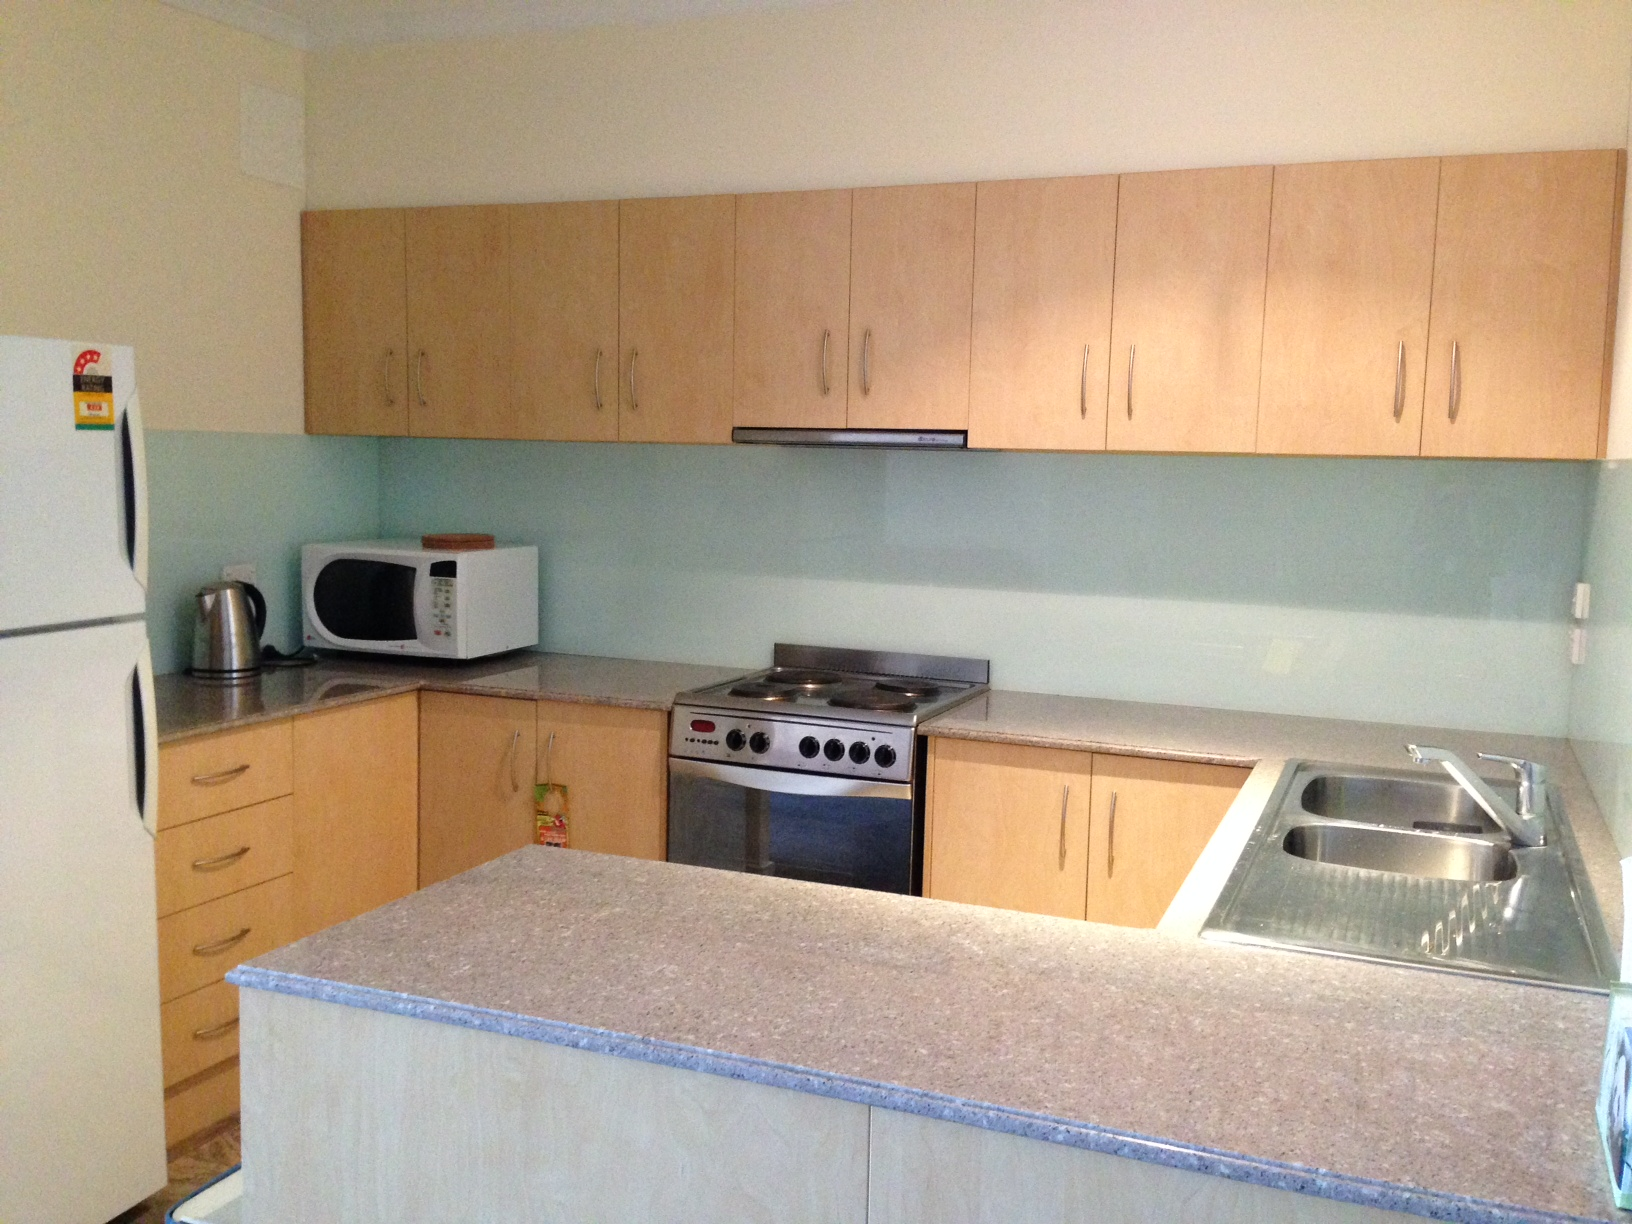 Central Adelaide Student Apartments Kitchen